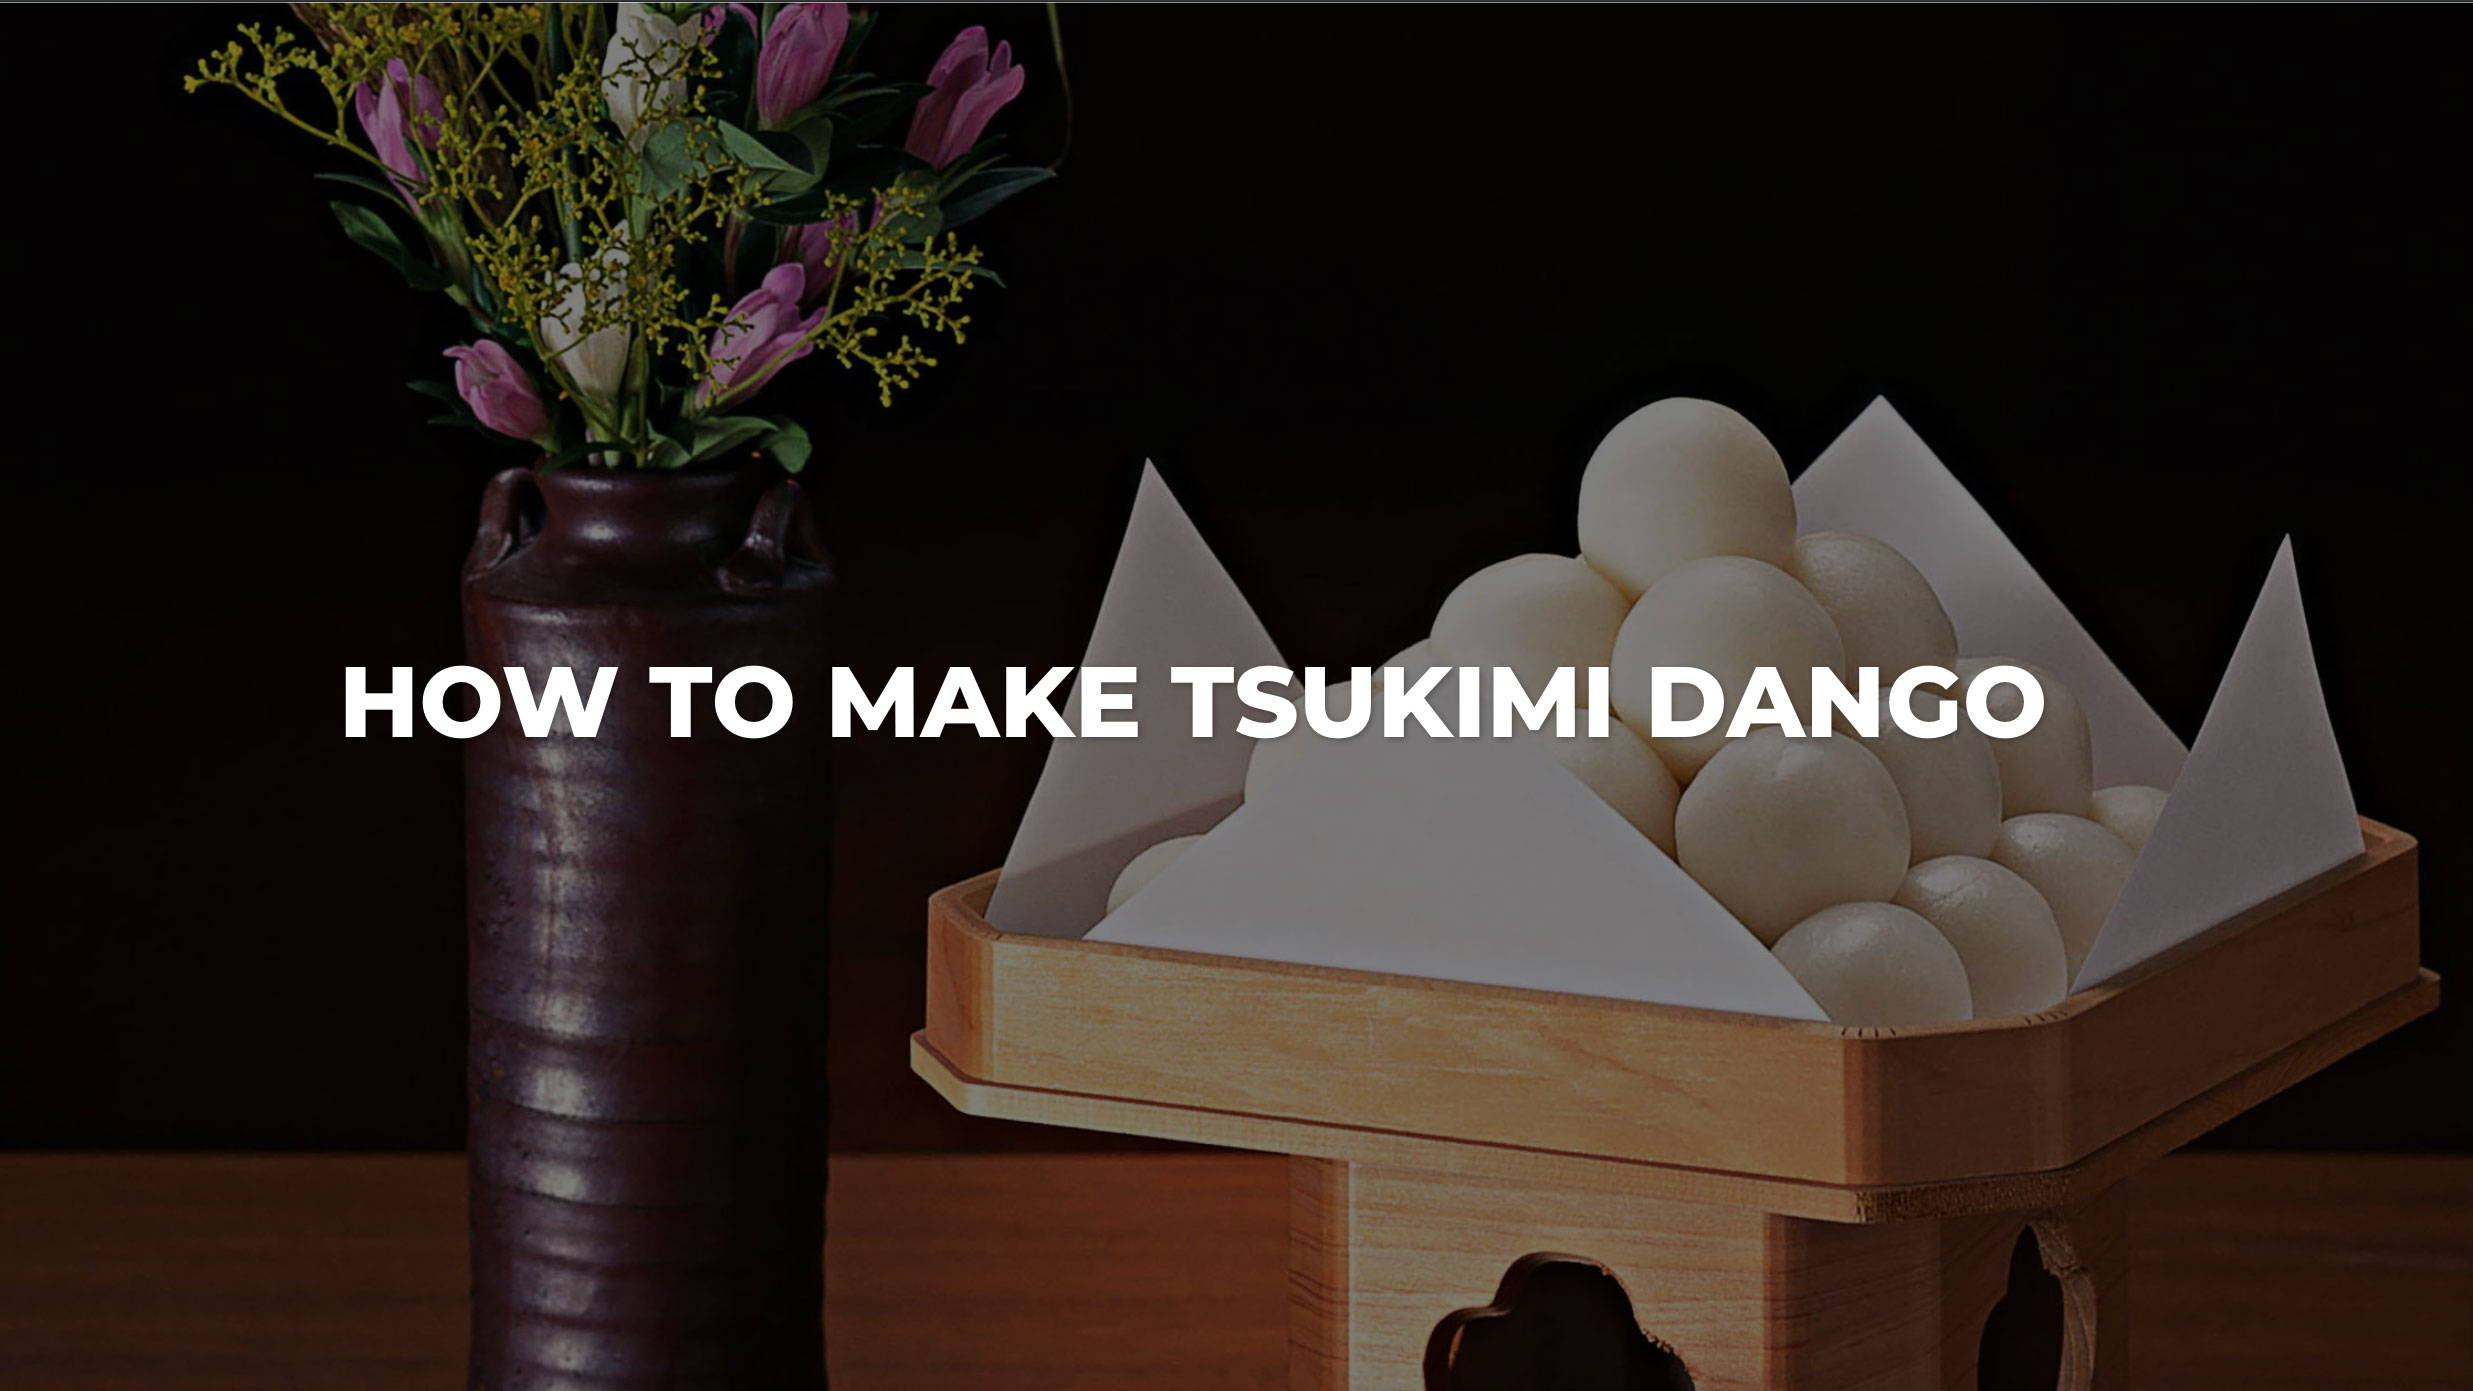 How to Make Tsukimi Dango Recipe